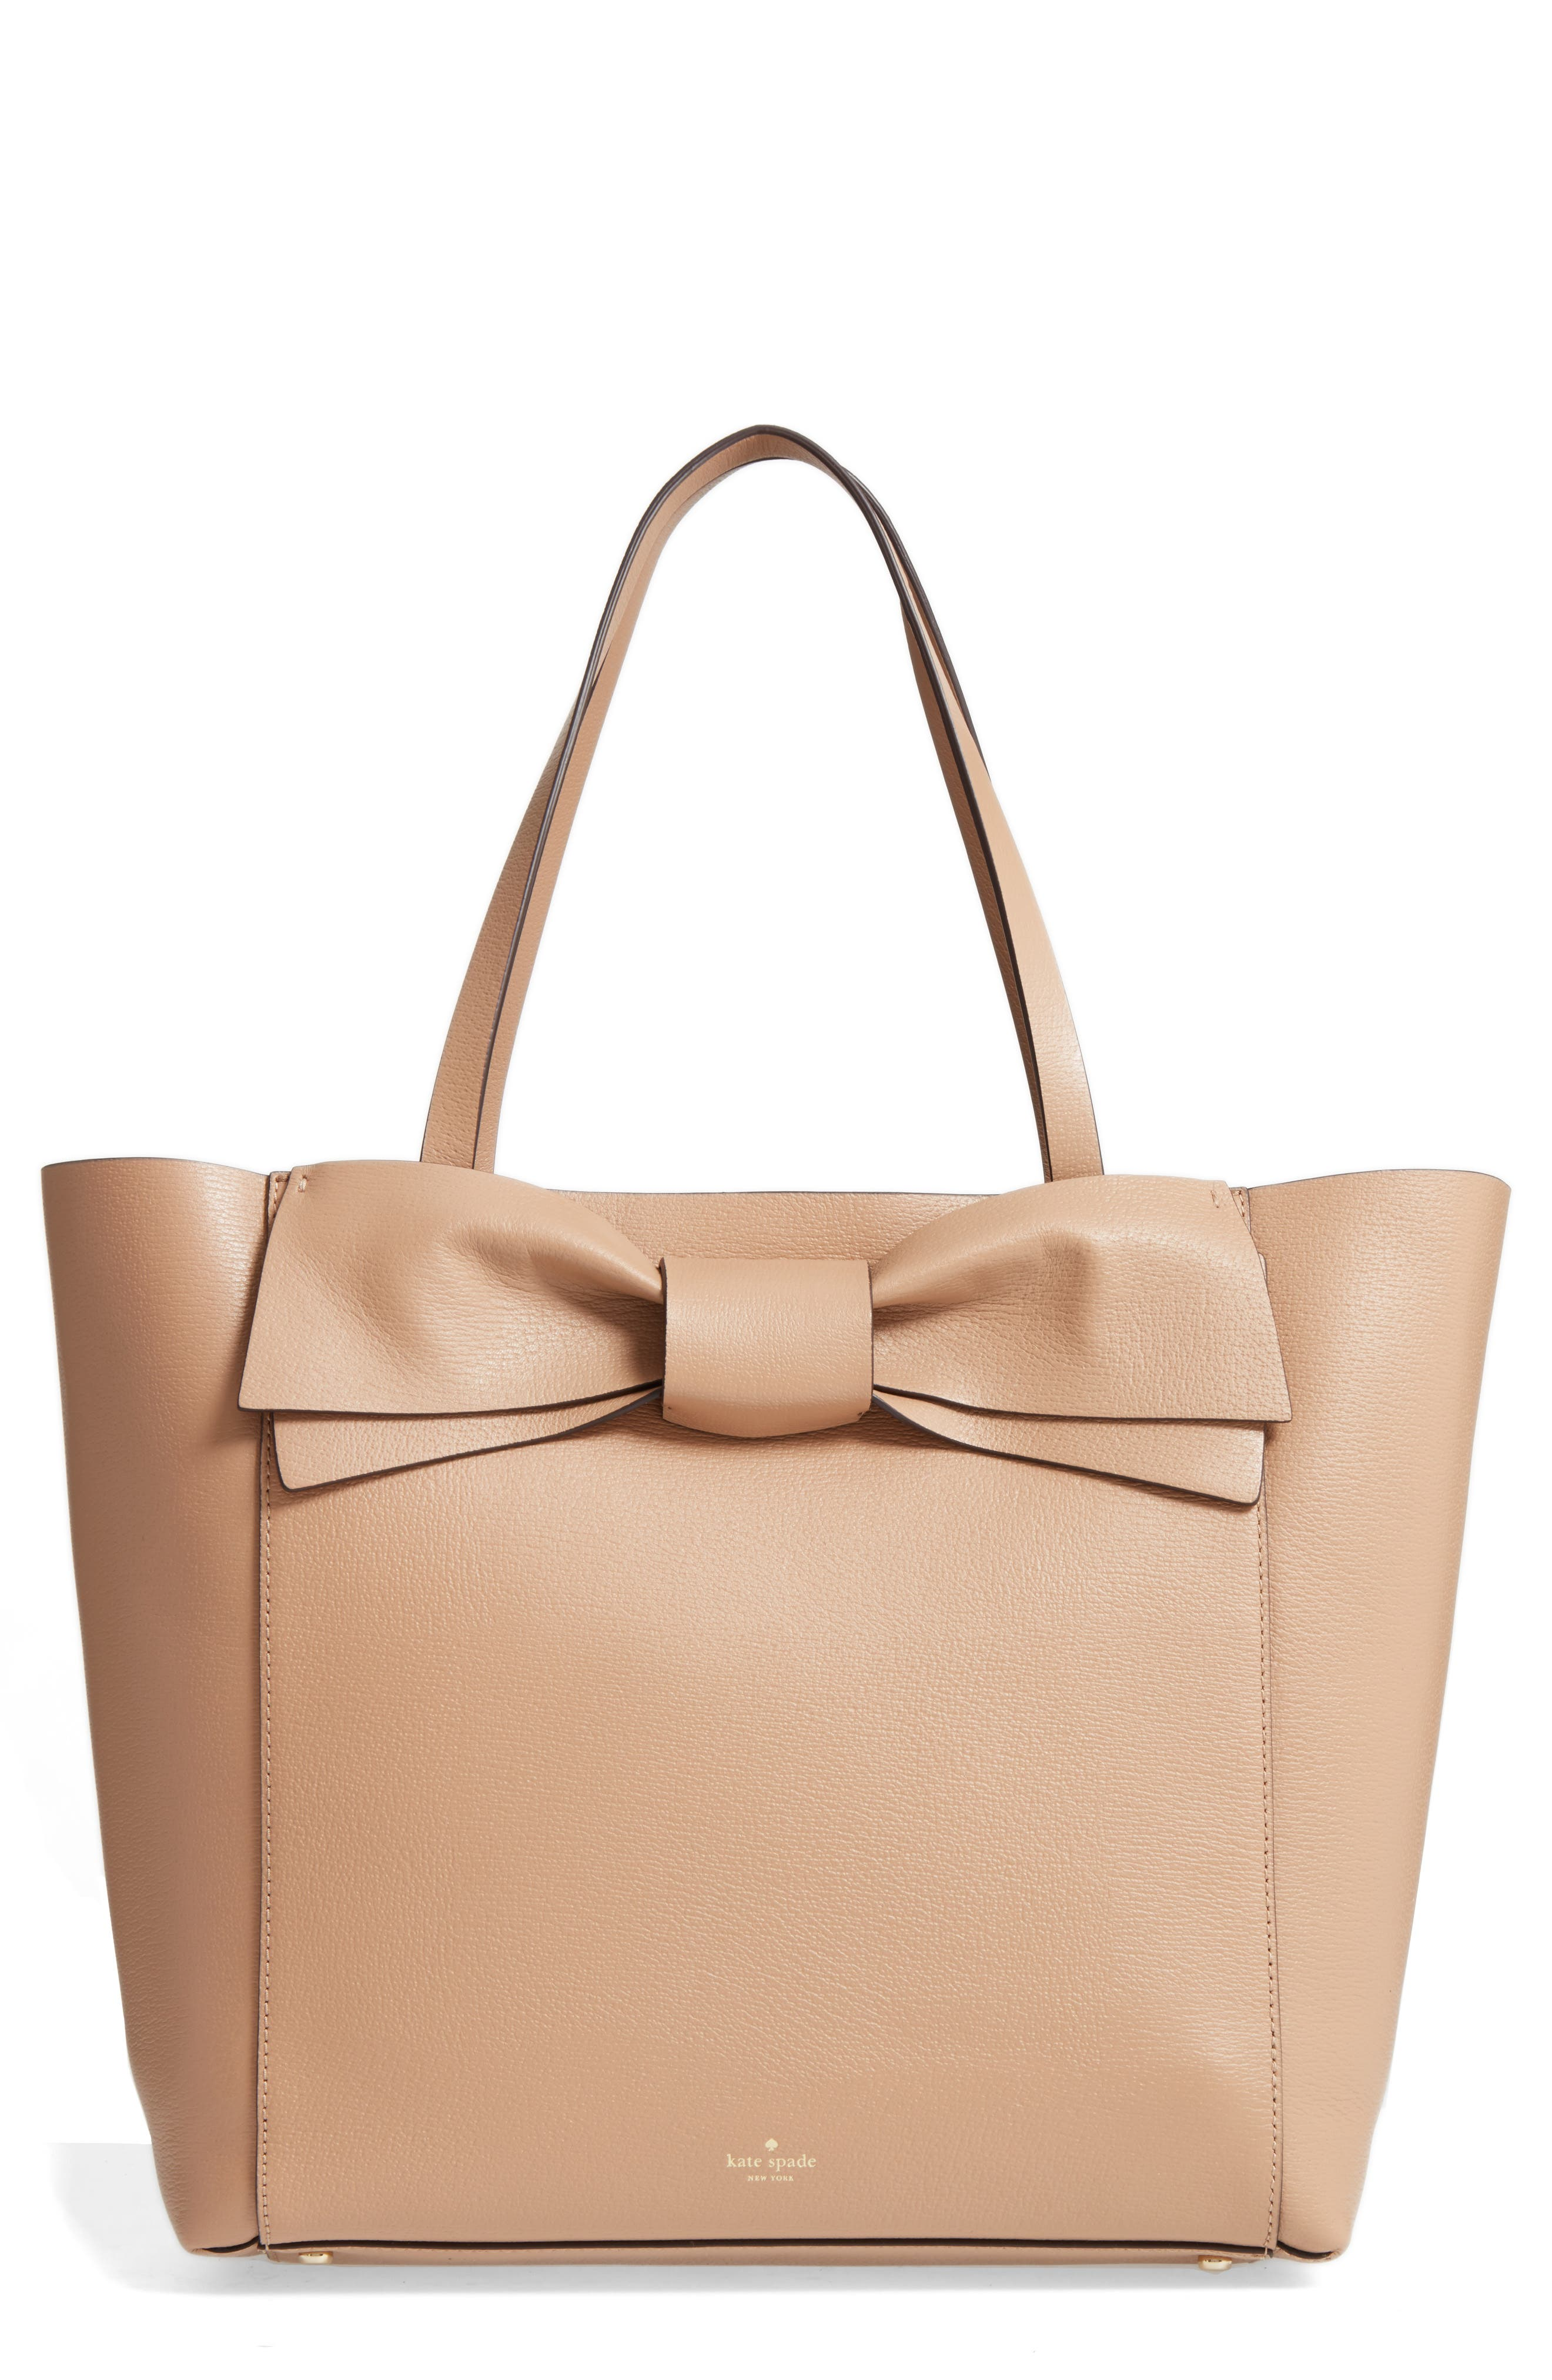 kate spade new york olive drive - savannah leather tote